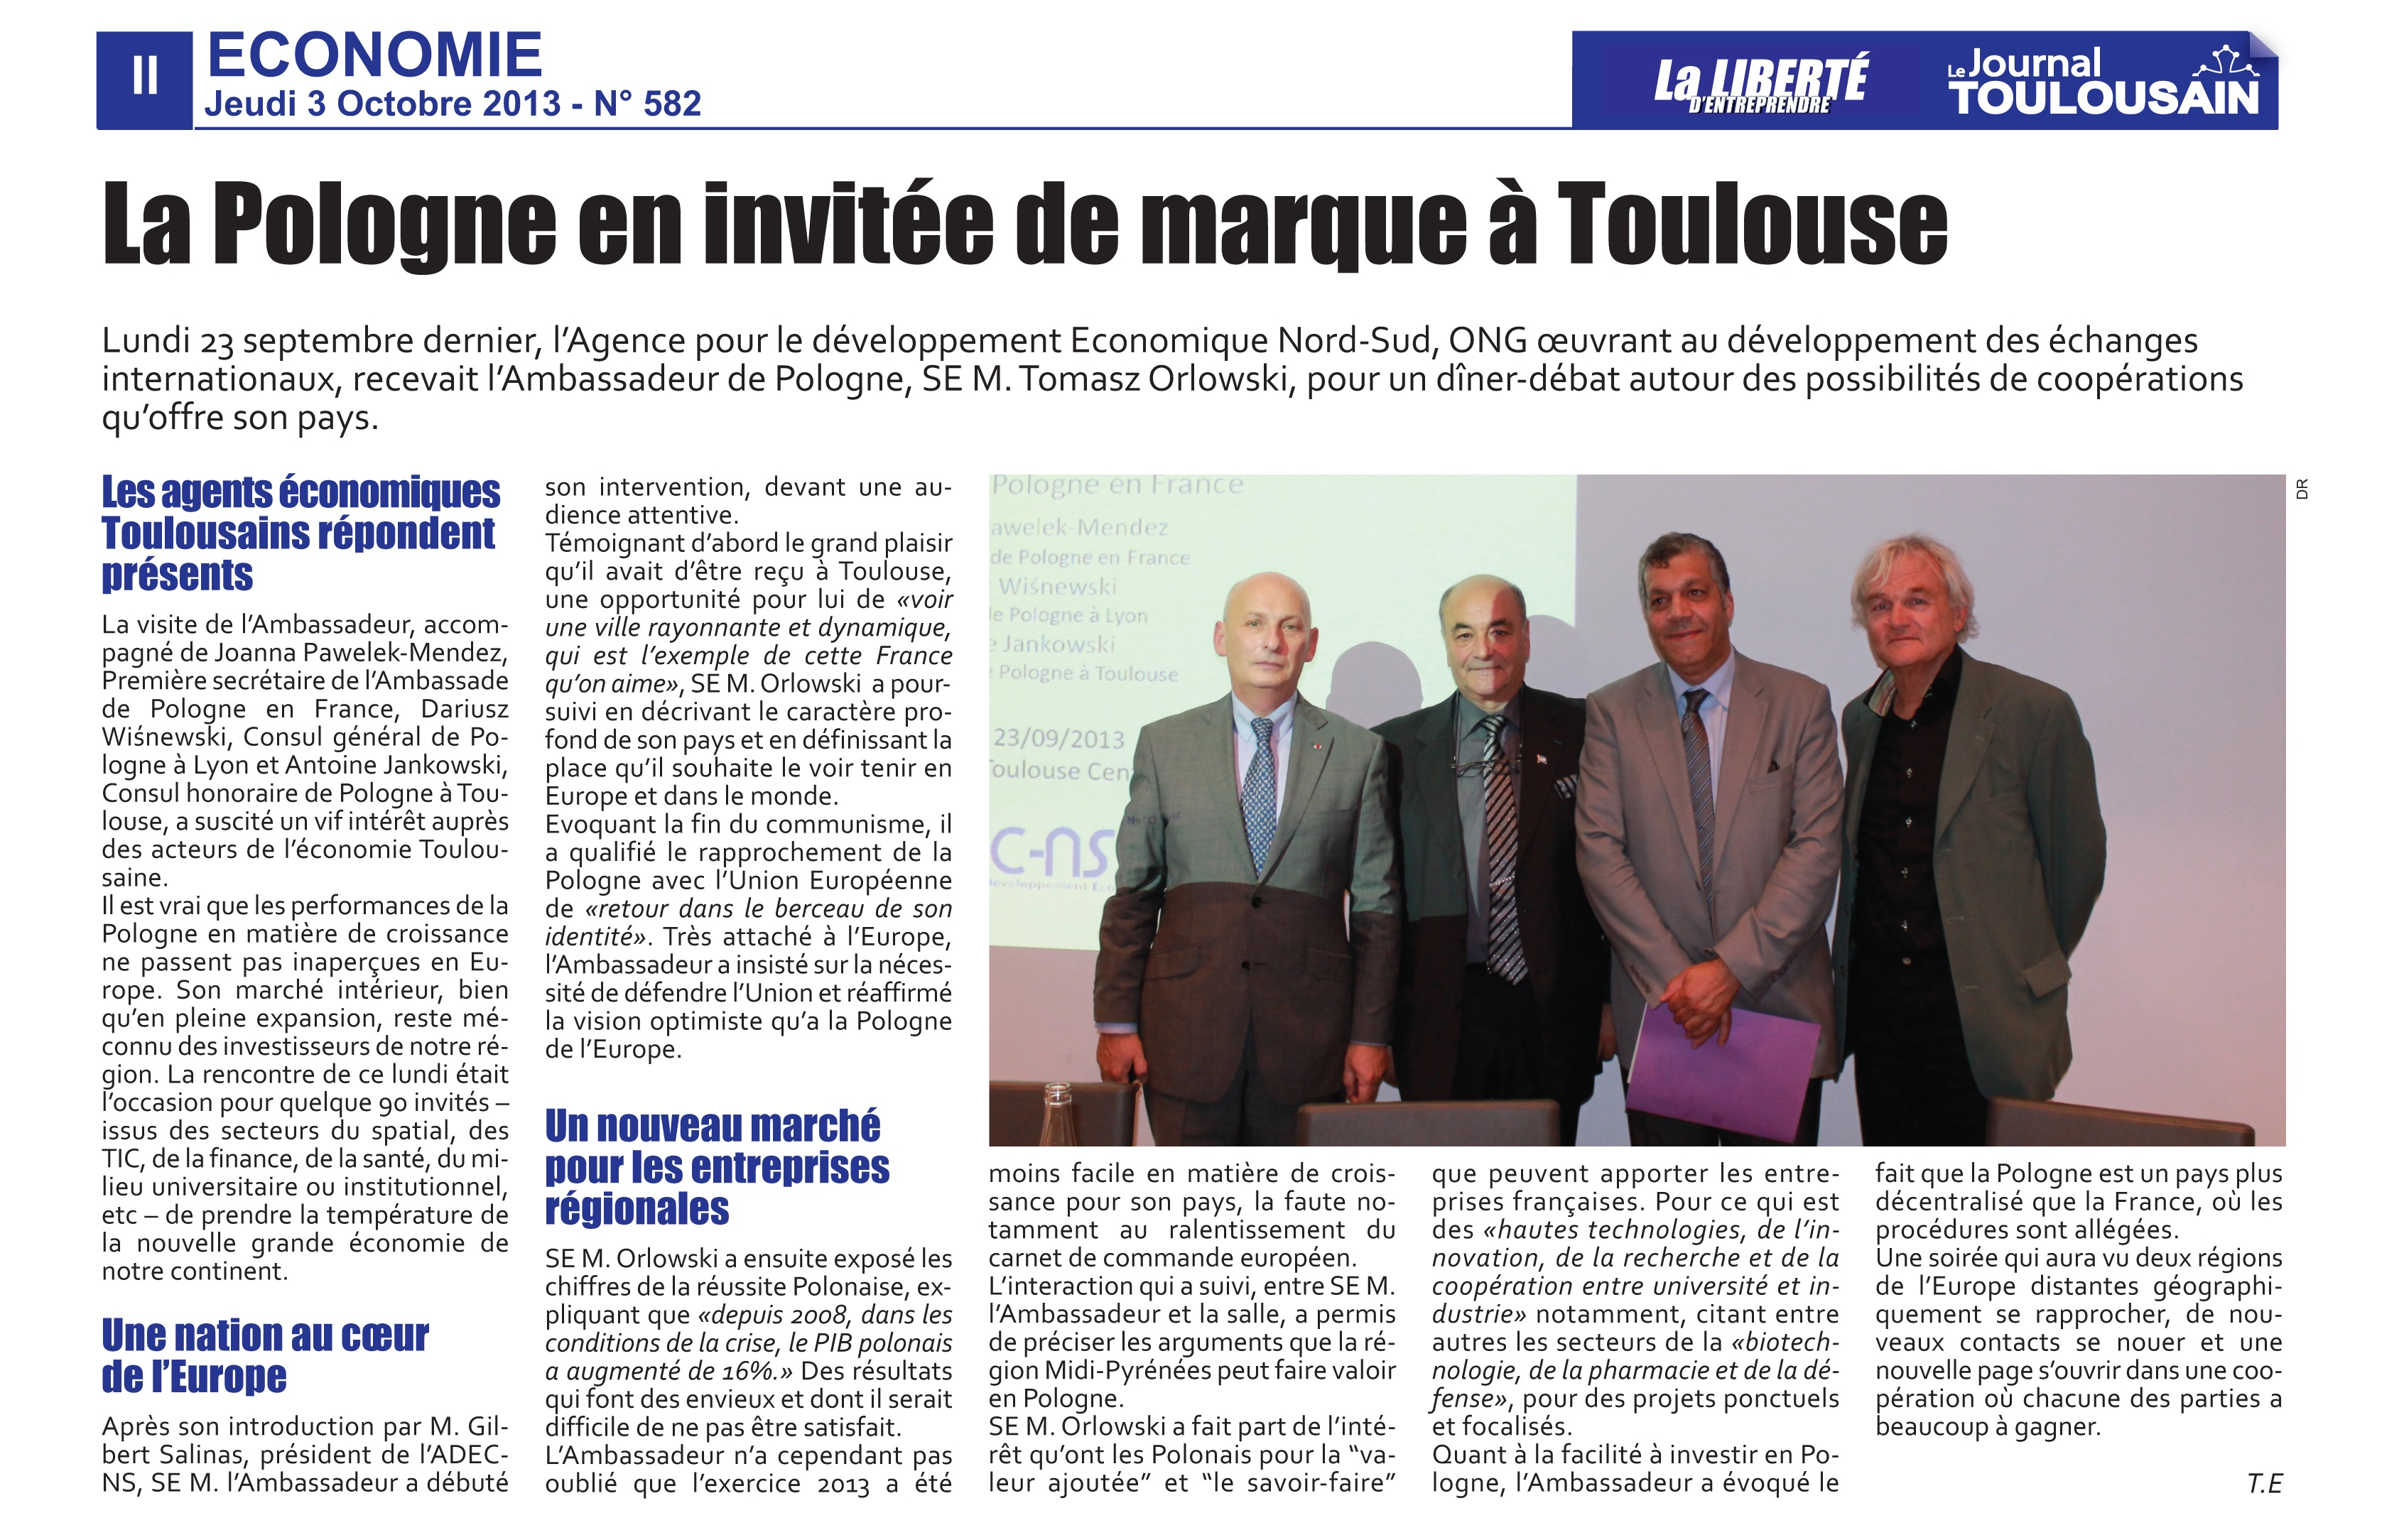 Article-Pologne-Journal-Toulousain